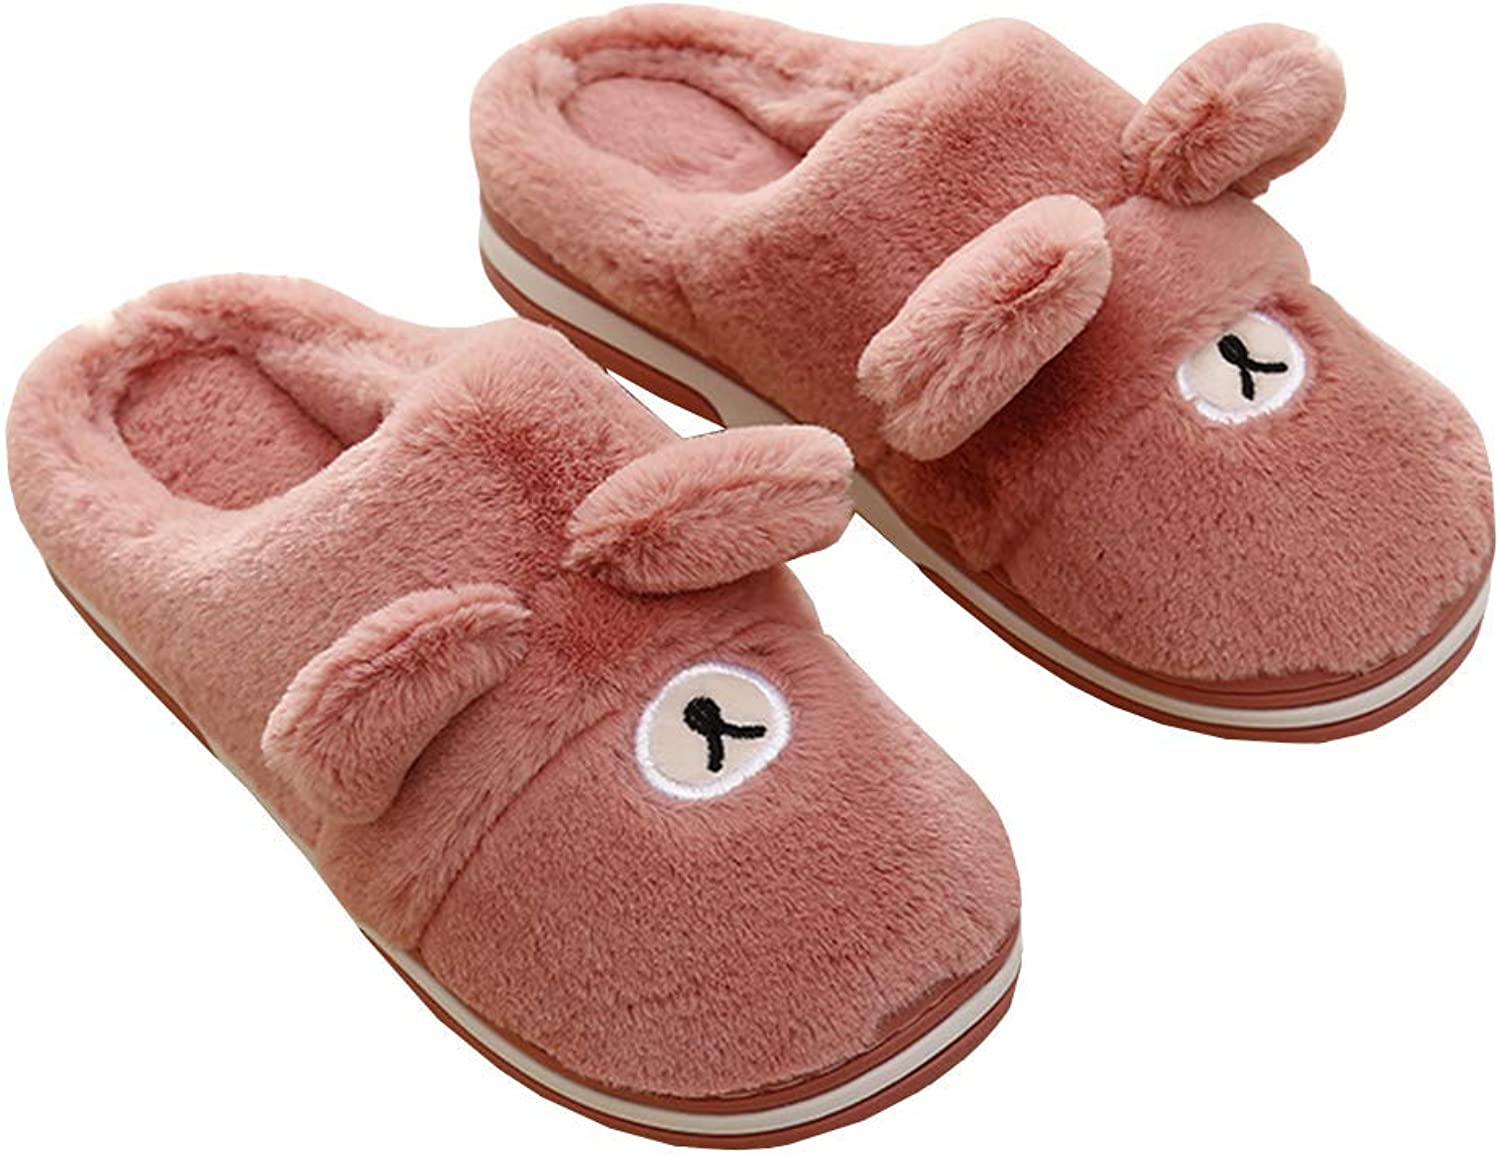 Winter Keep Warm Slippers Bear Plush Unisex Flip Flop Indoor Bedroom Floor Couple Home Hairy Soft Cotton shoes